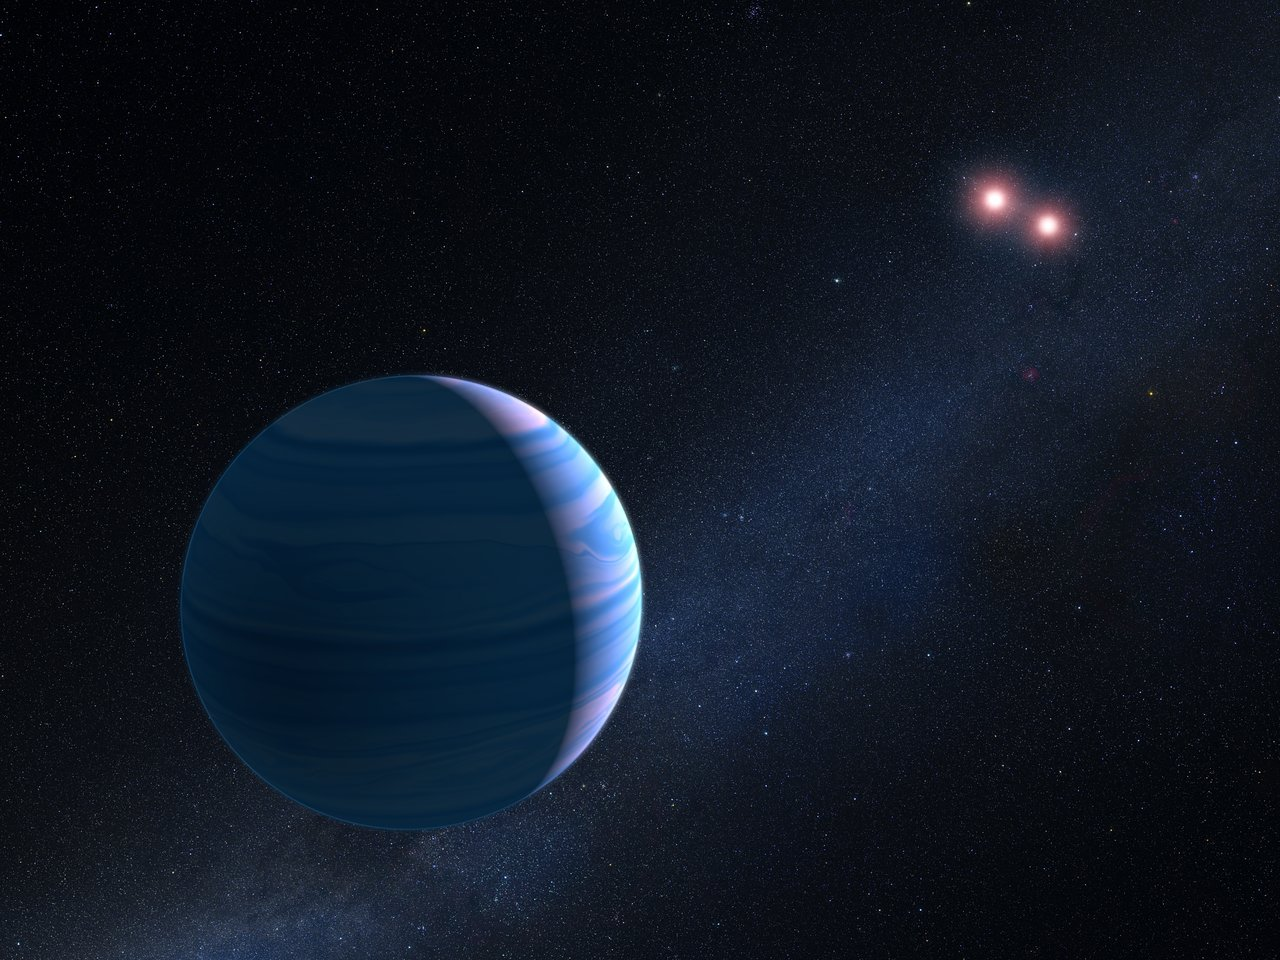 Science Release: Hubble helps find light-bending world with two suns